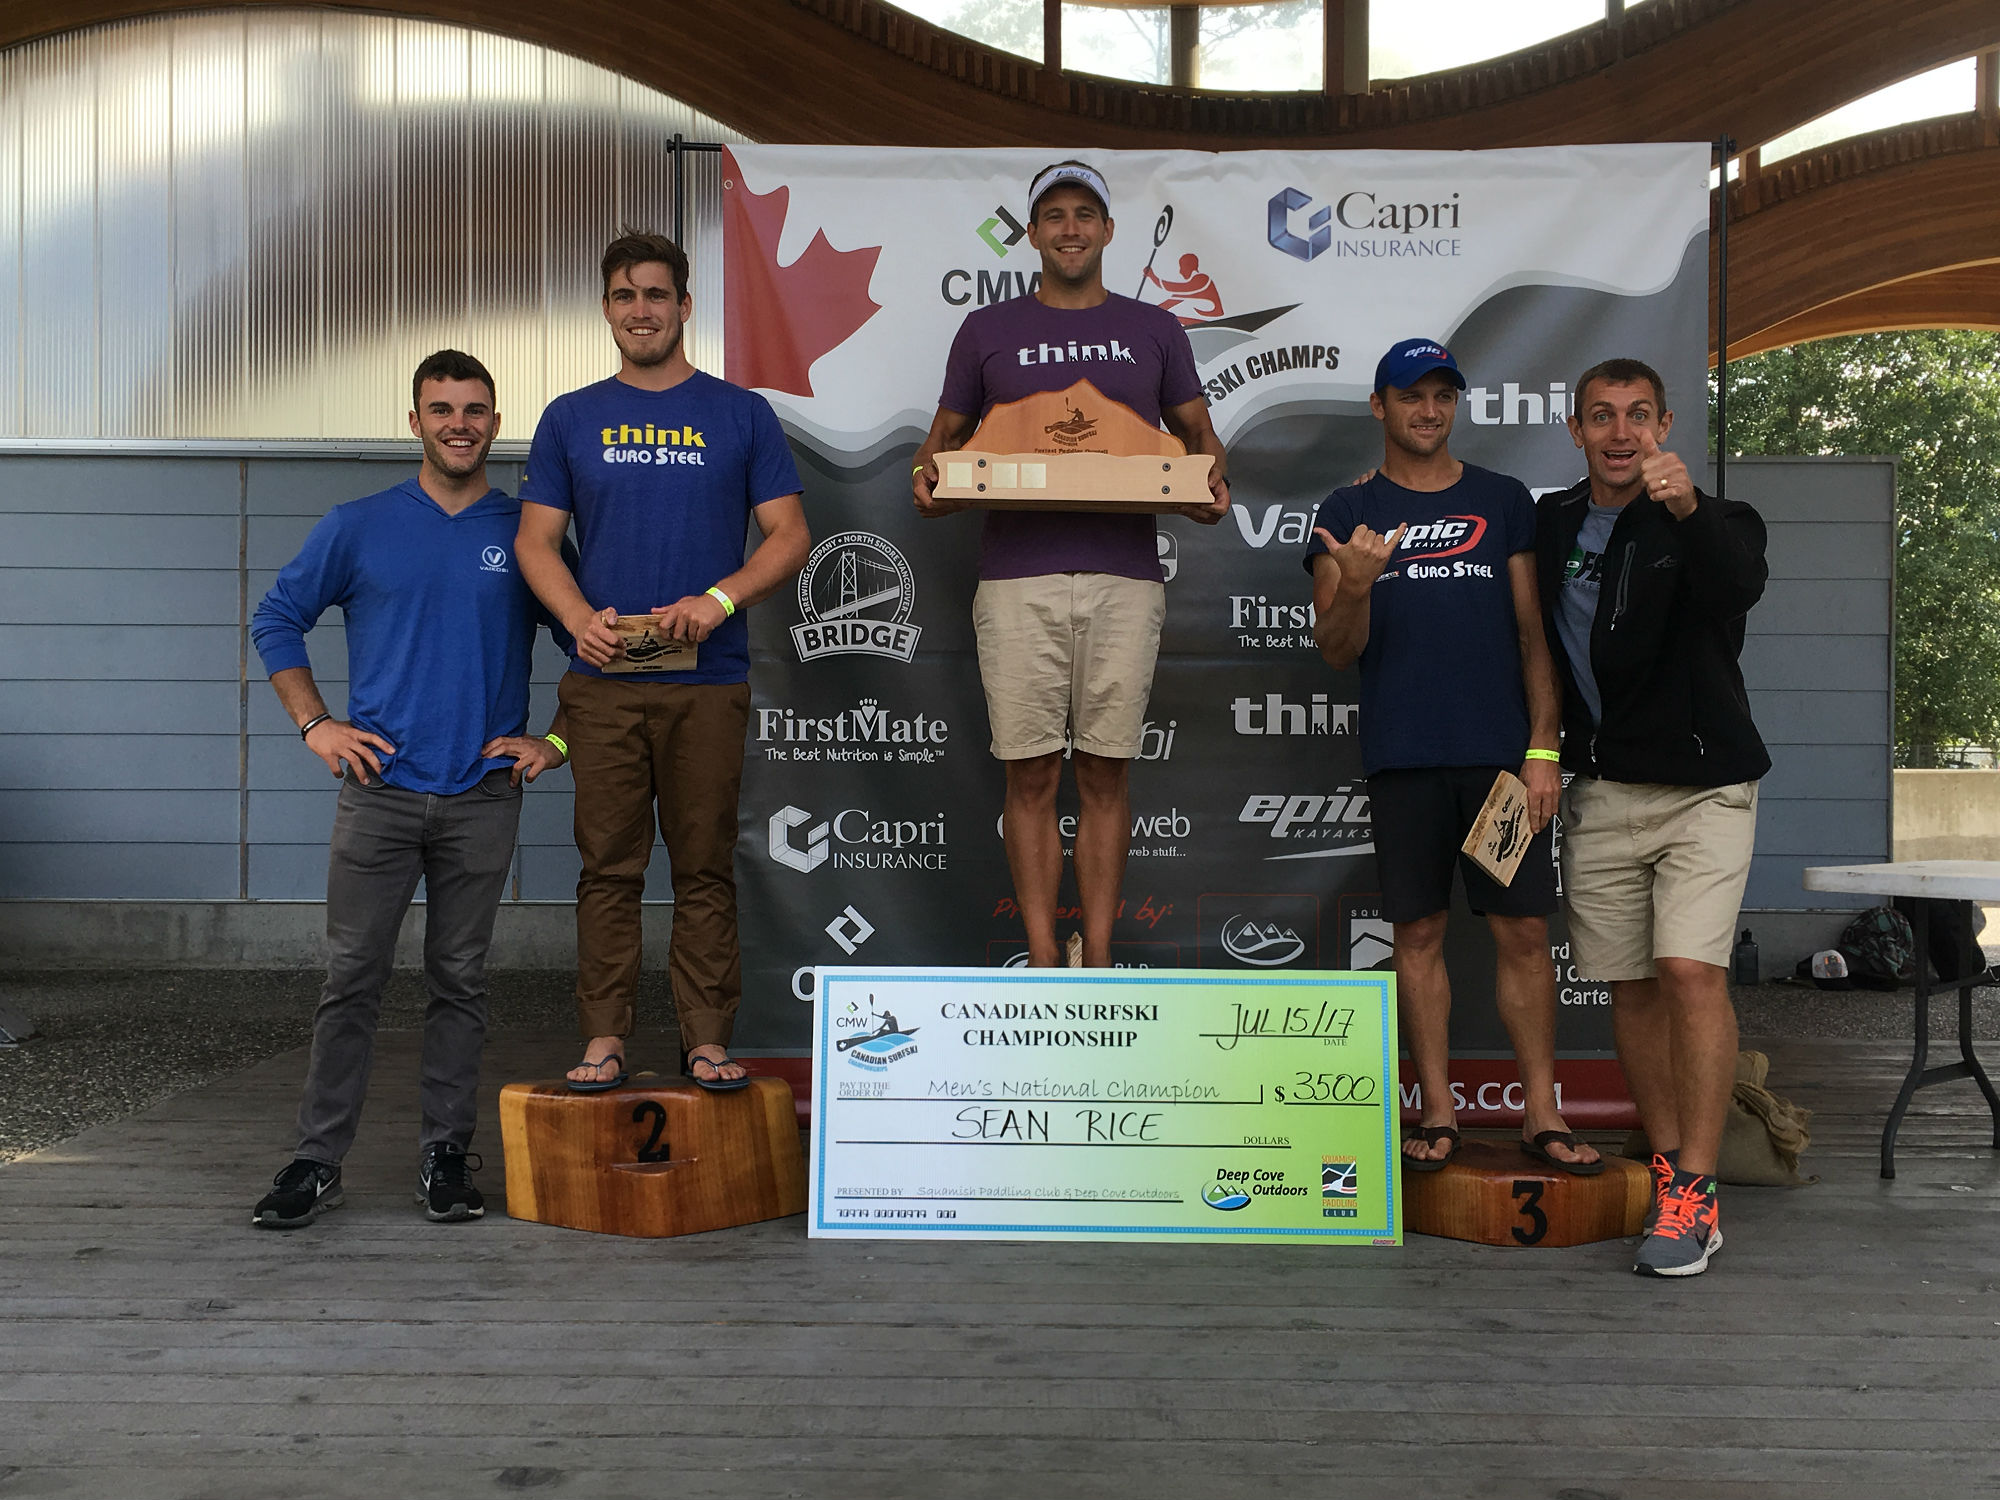 Canadian Surfski Champs Podiums